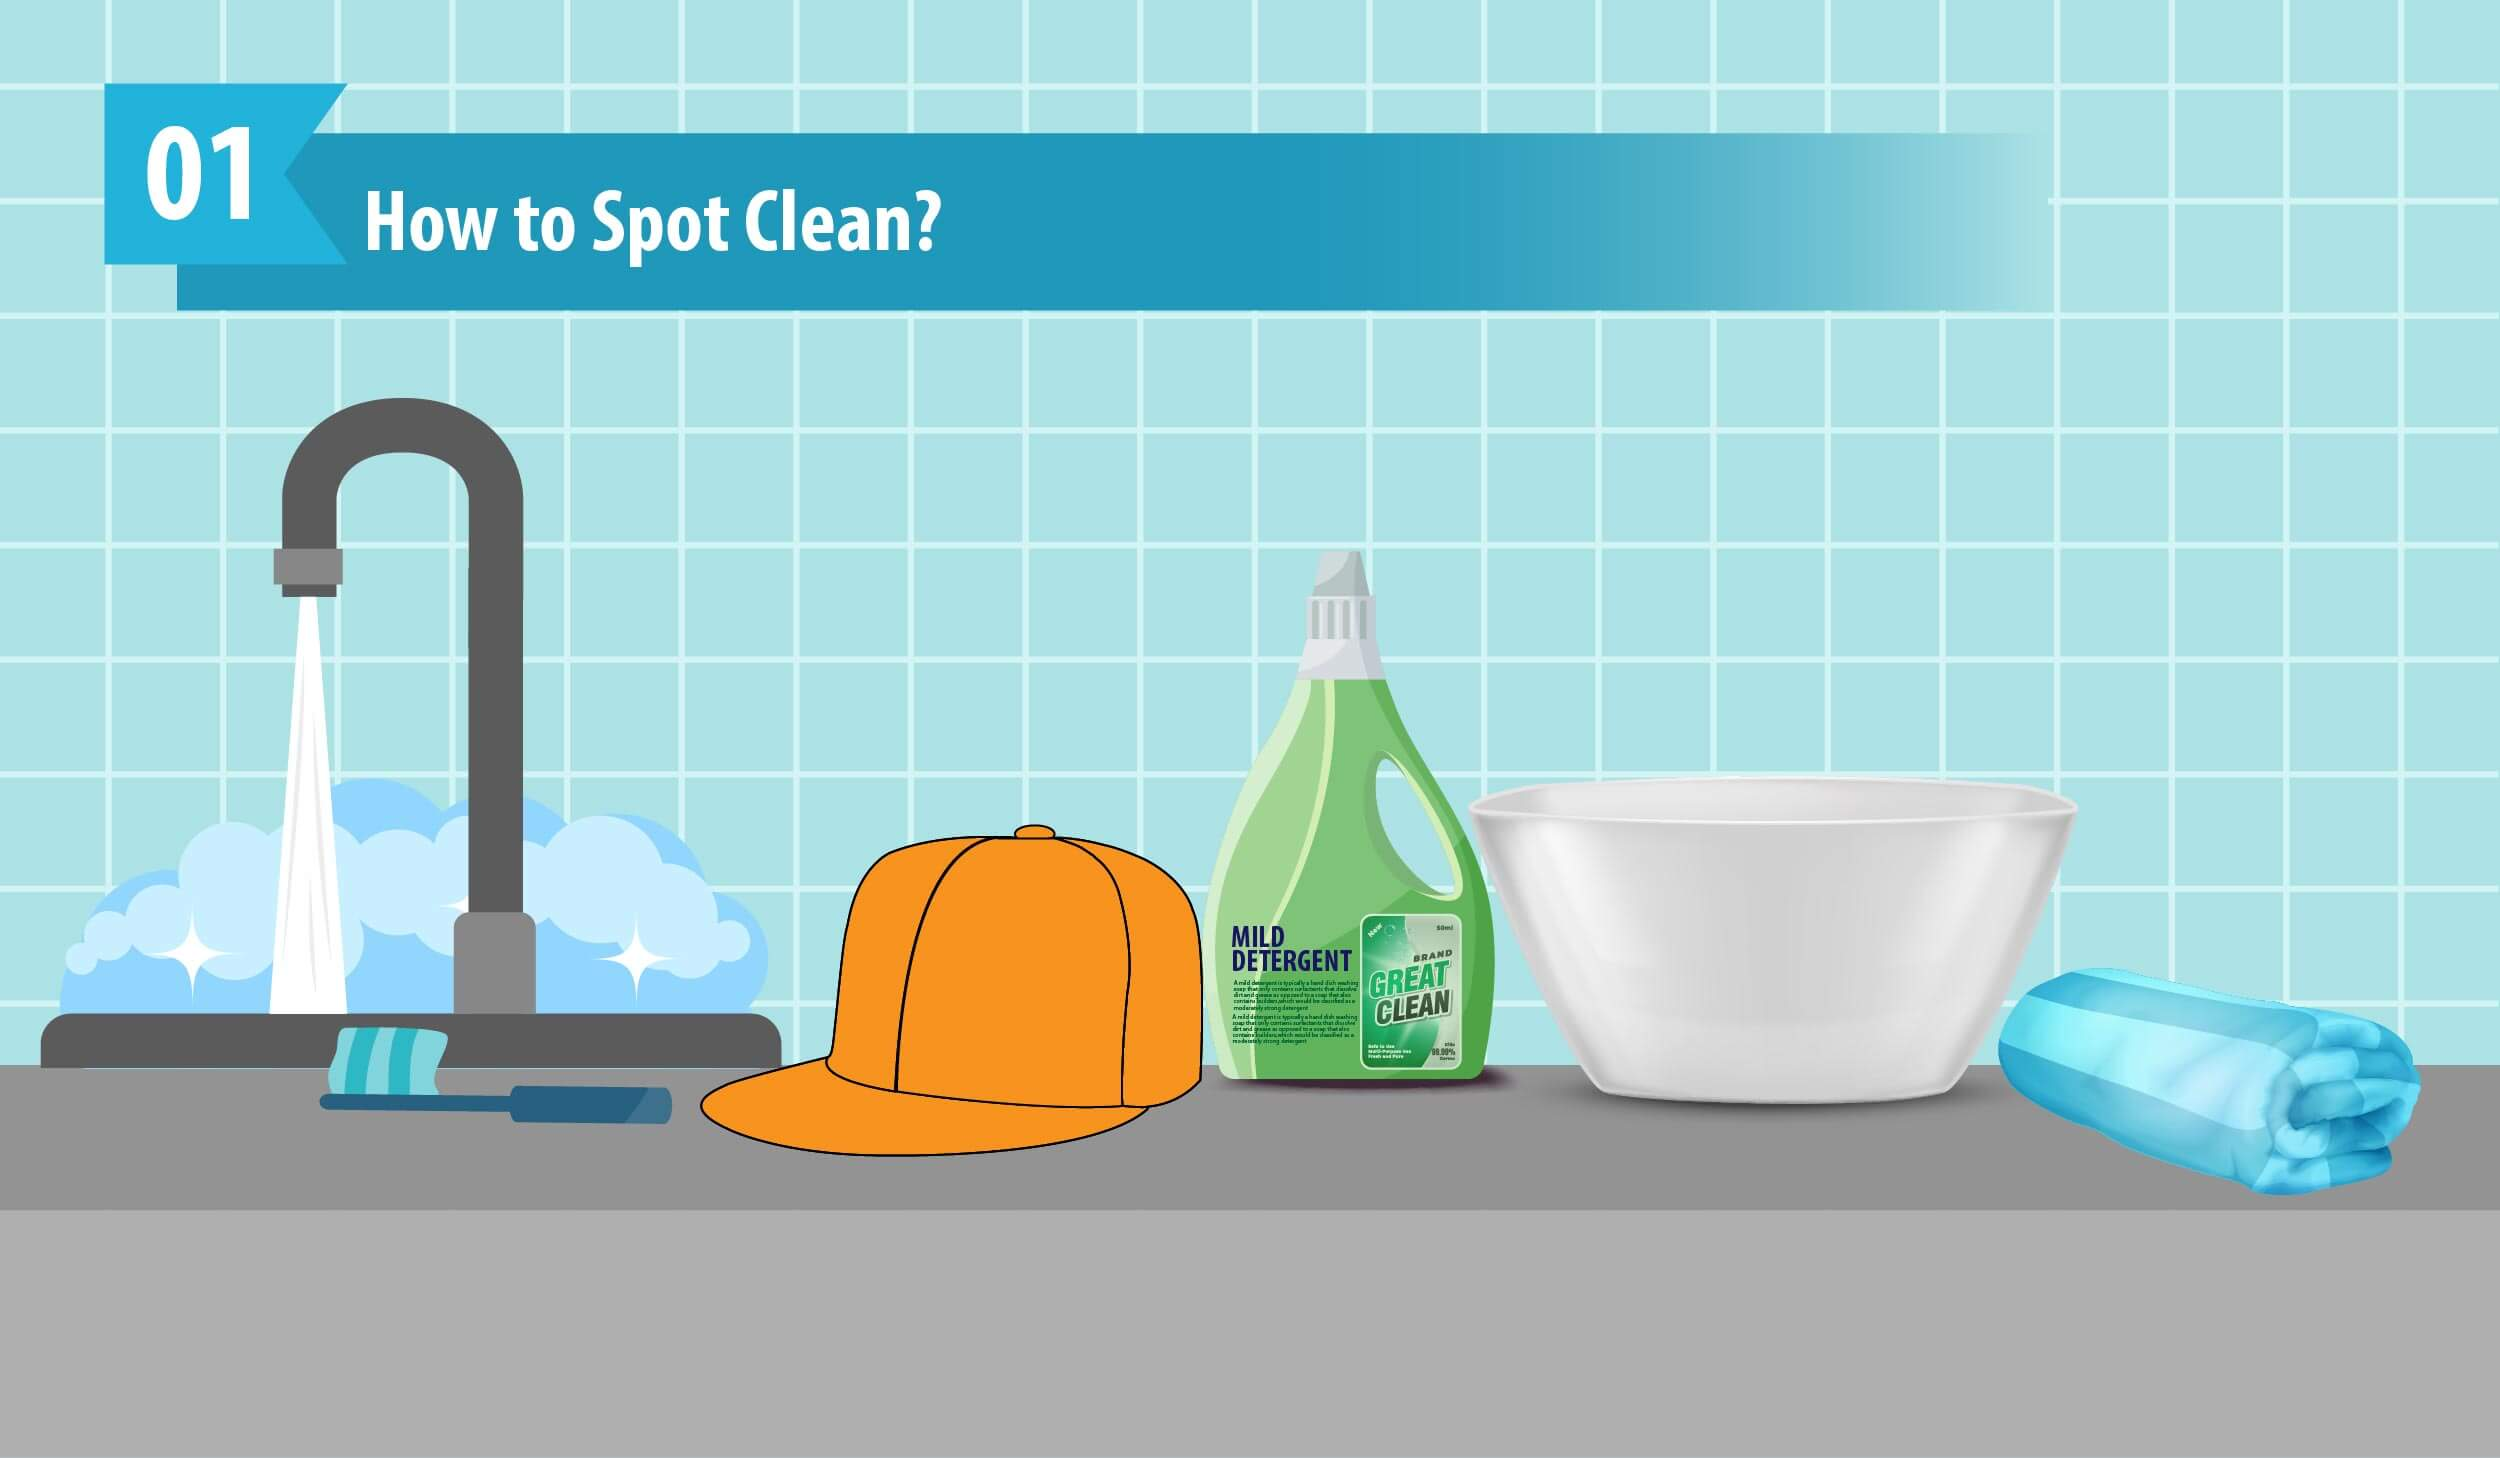 How to Spot Clean